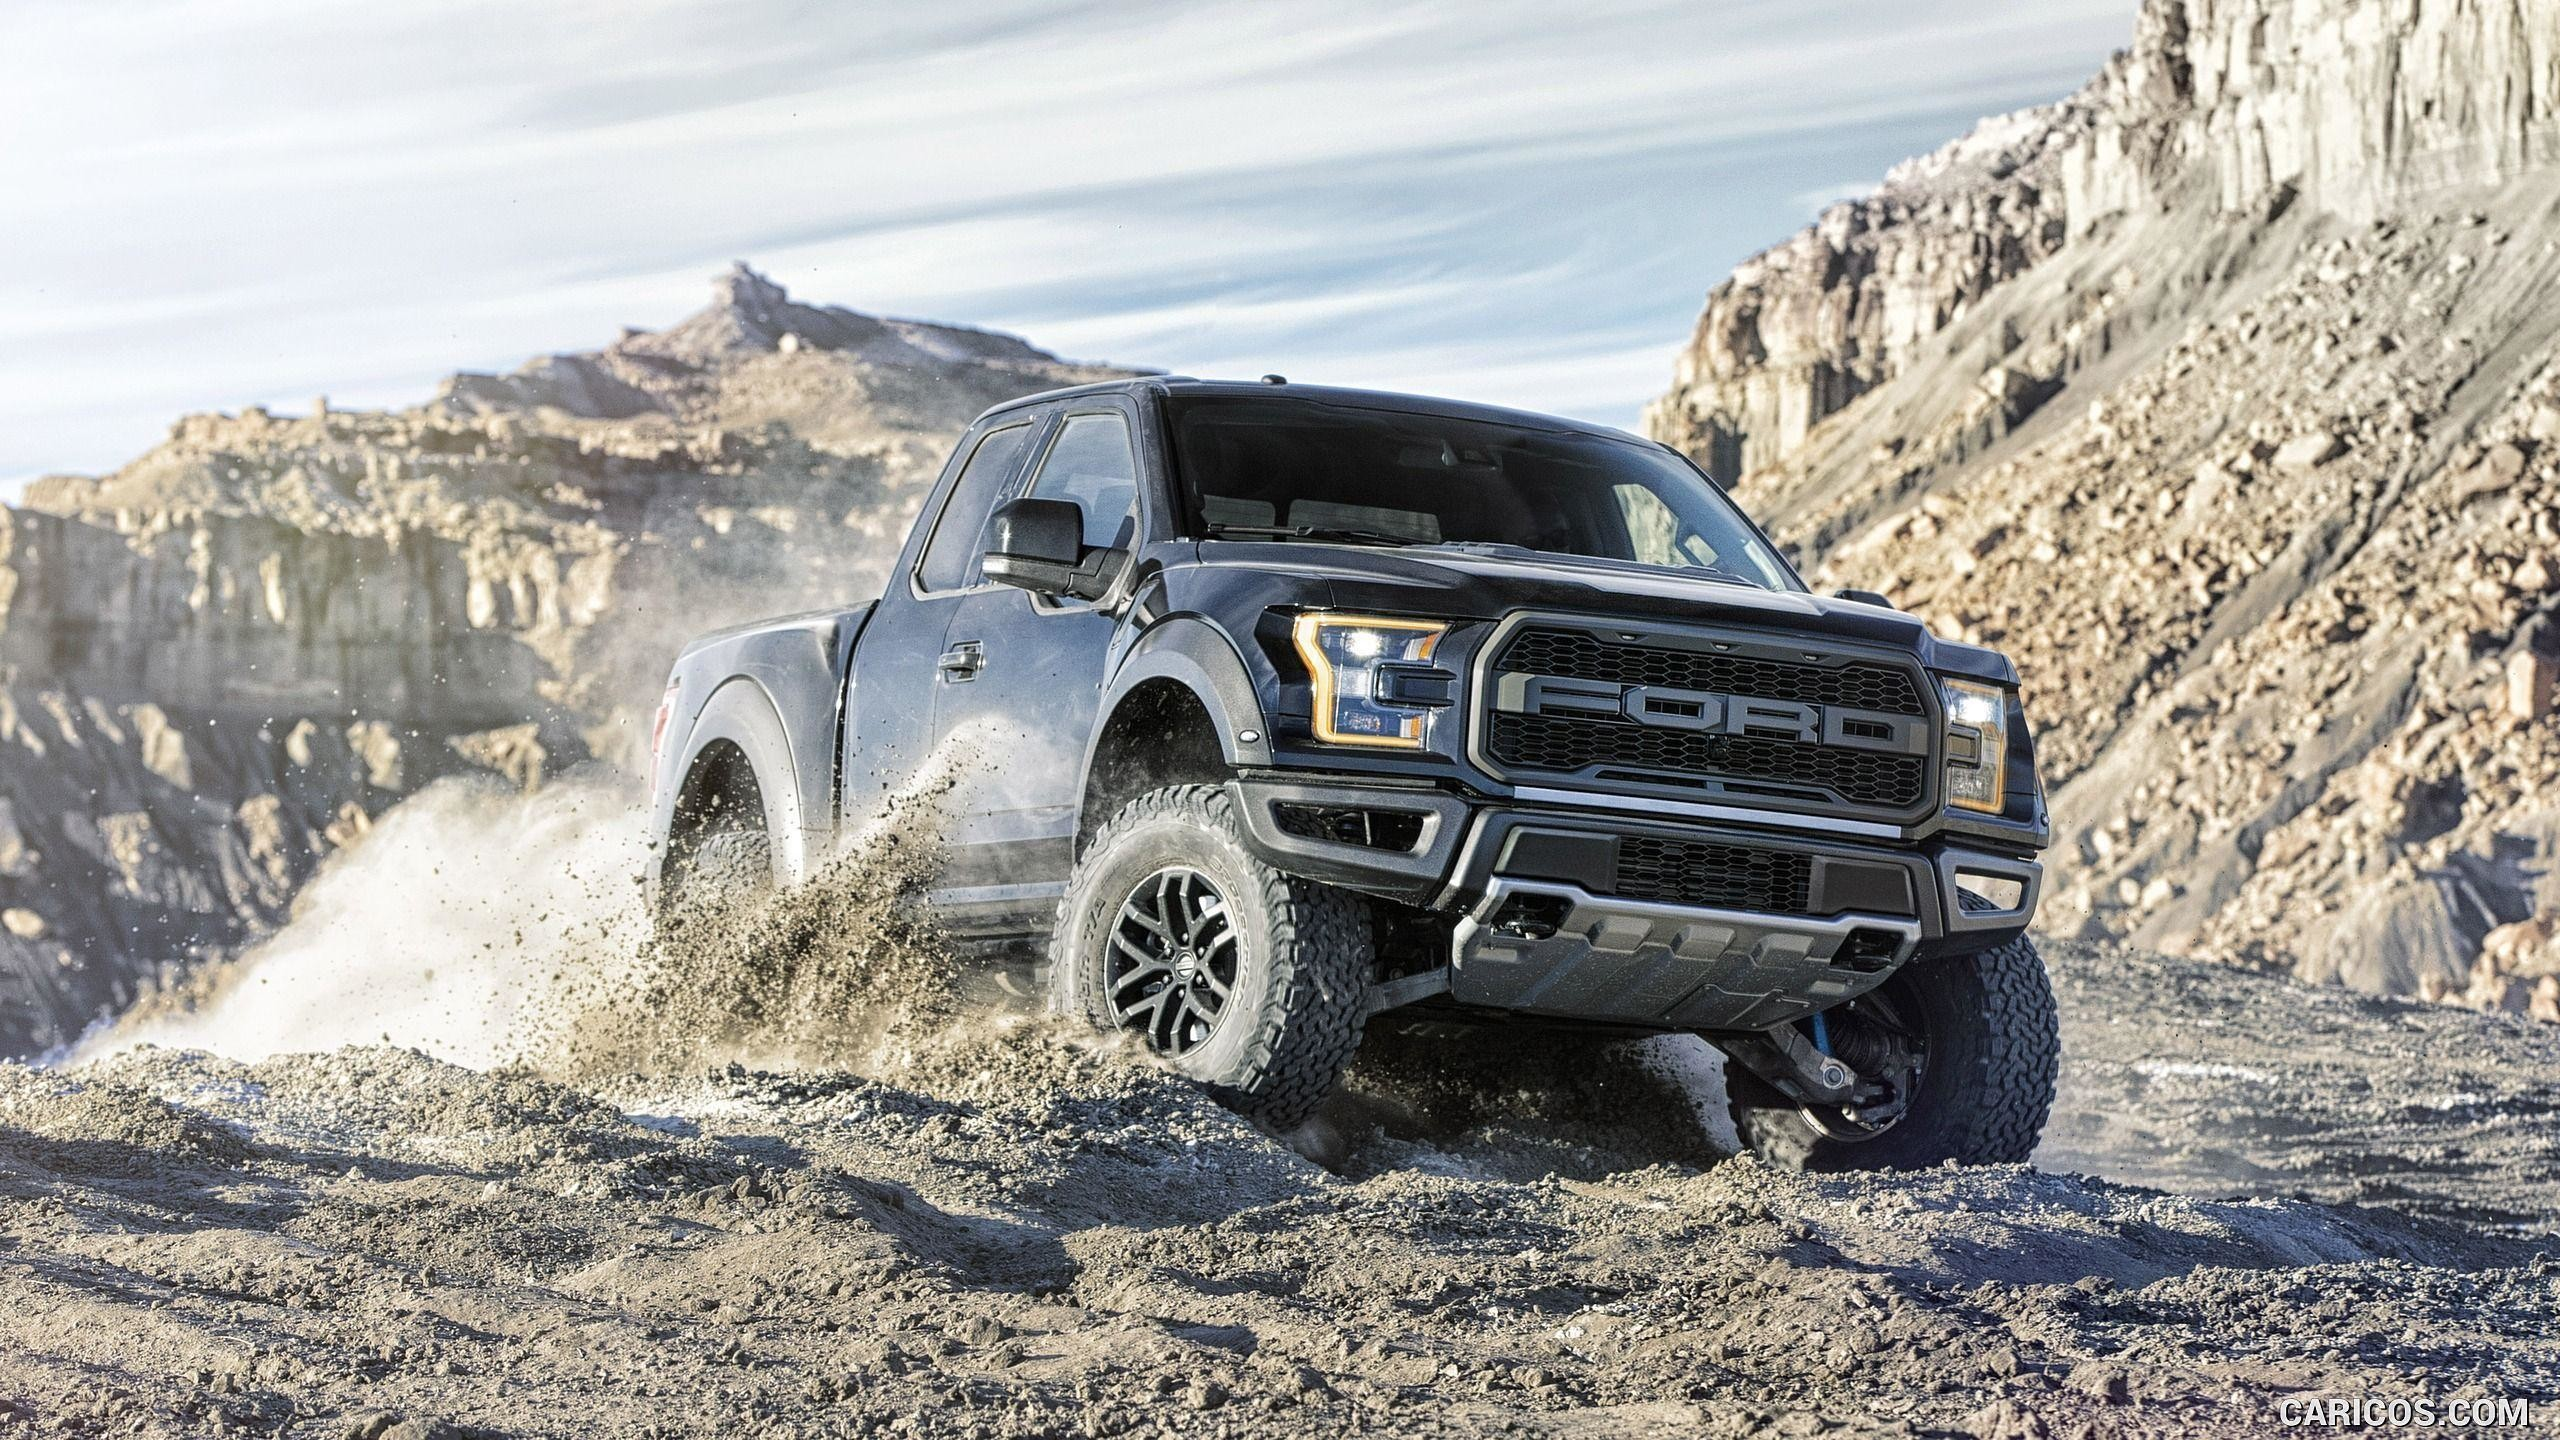 2560x1440 2017 Ford F-150 Raptor Wallpaper | Things to fill the Garage with .